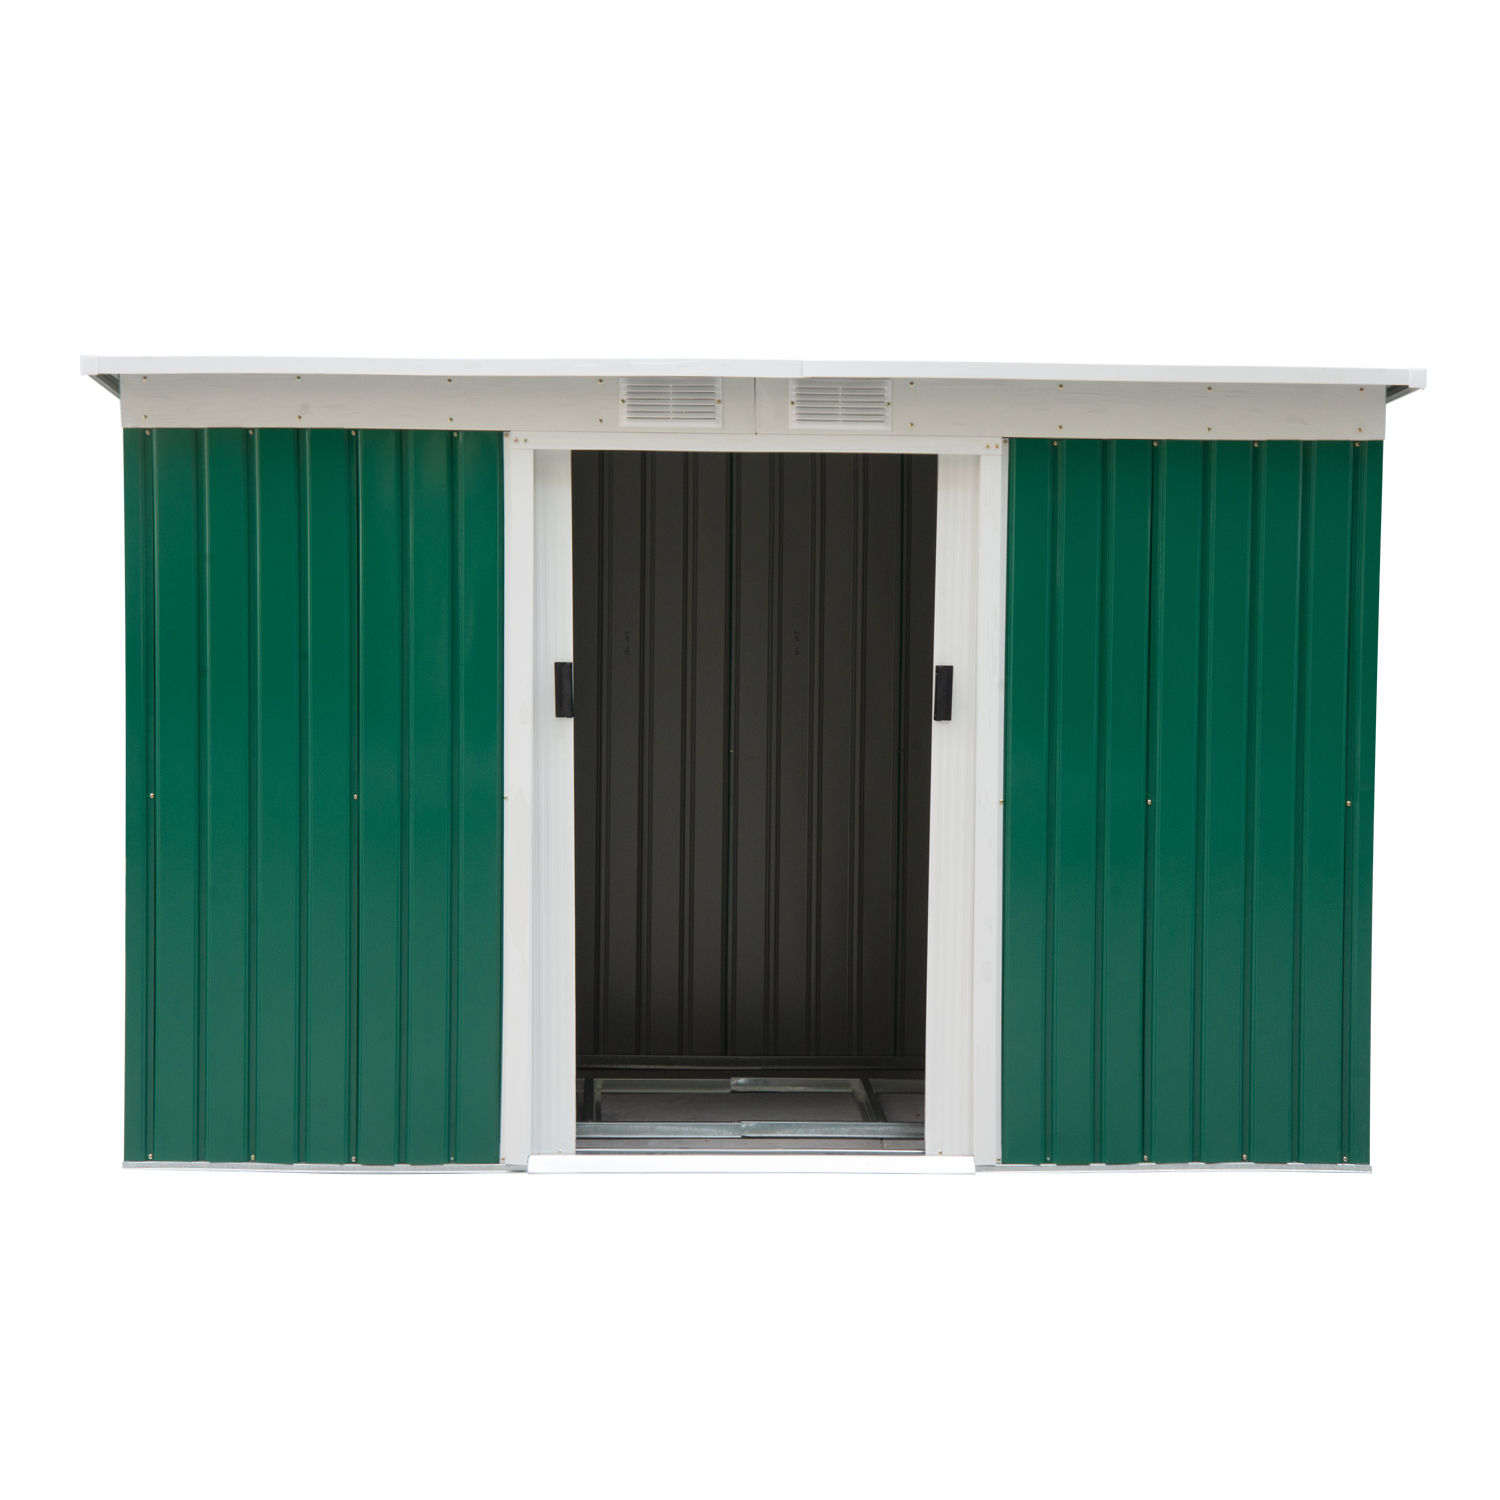 Garden Sheds 5 X 9 delighful garden sheds 5 x 9 0 on design